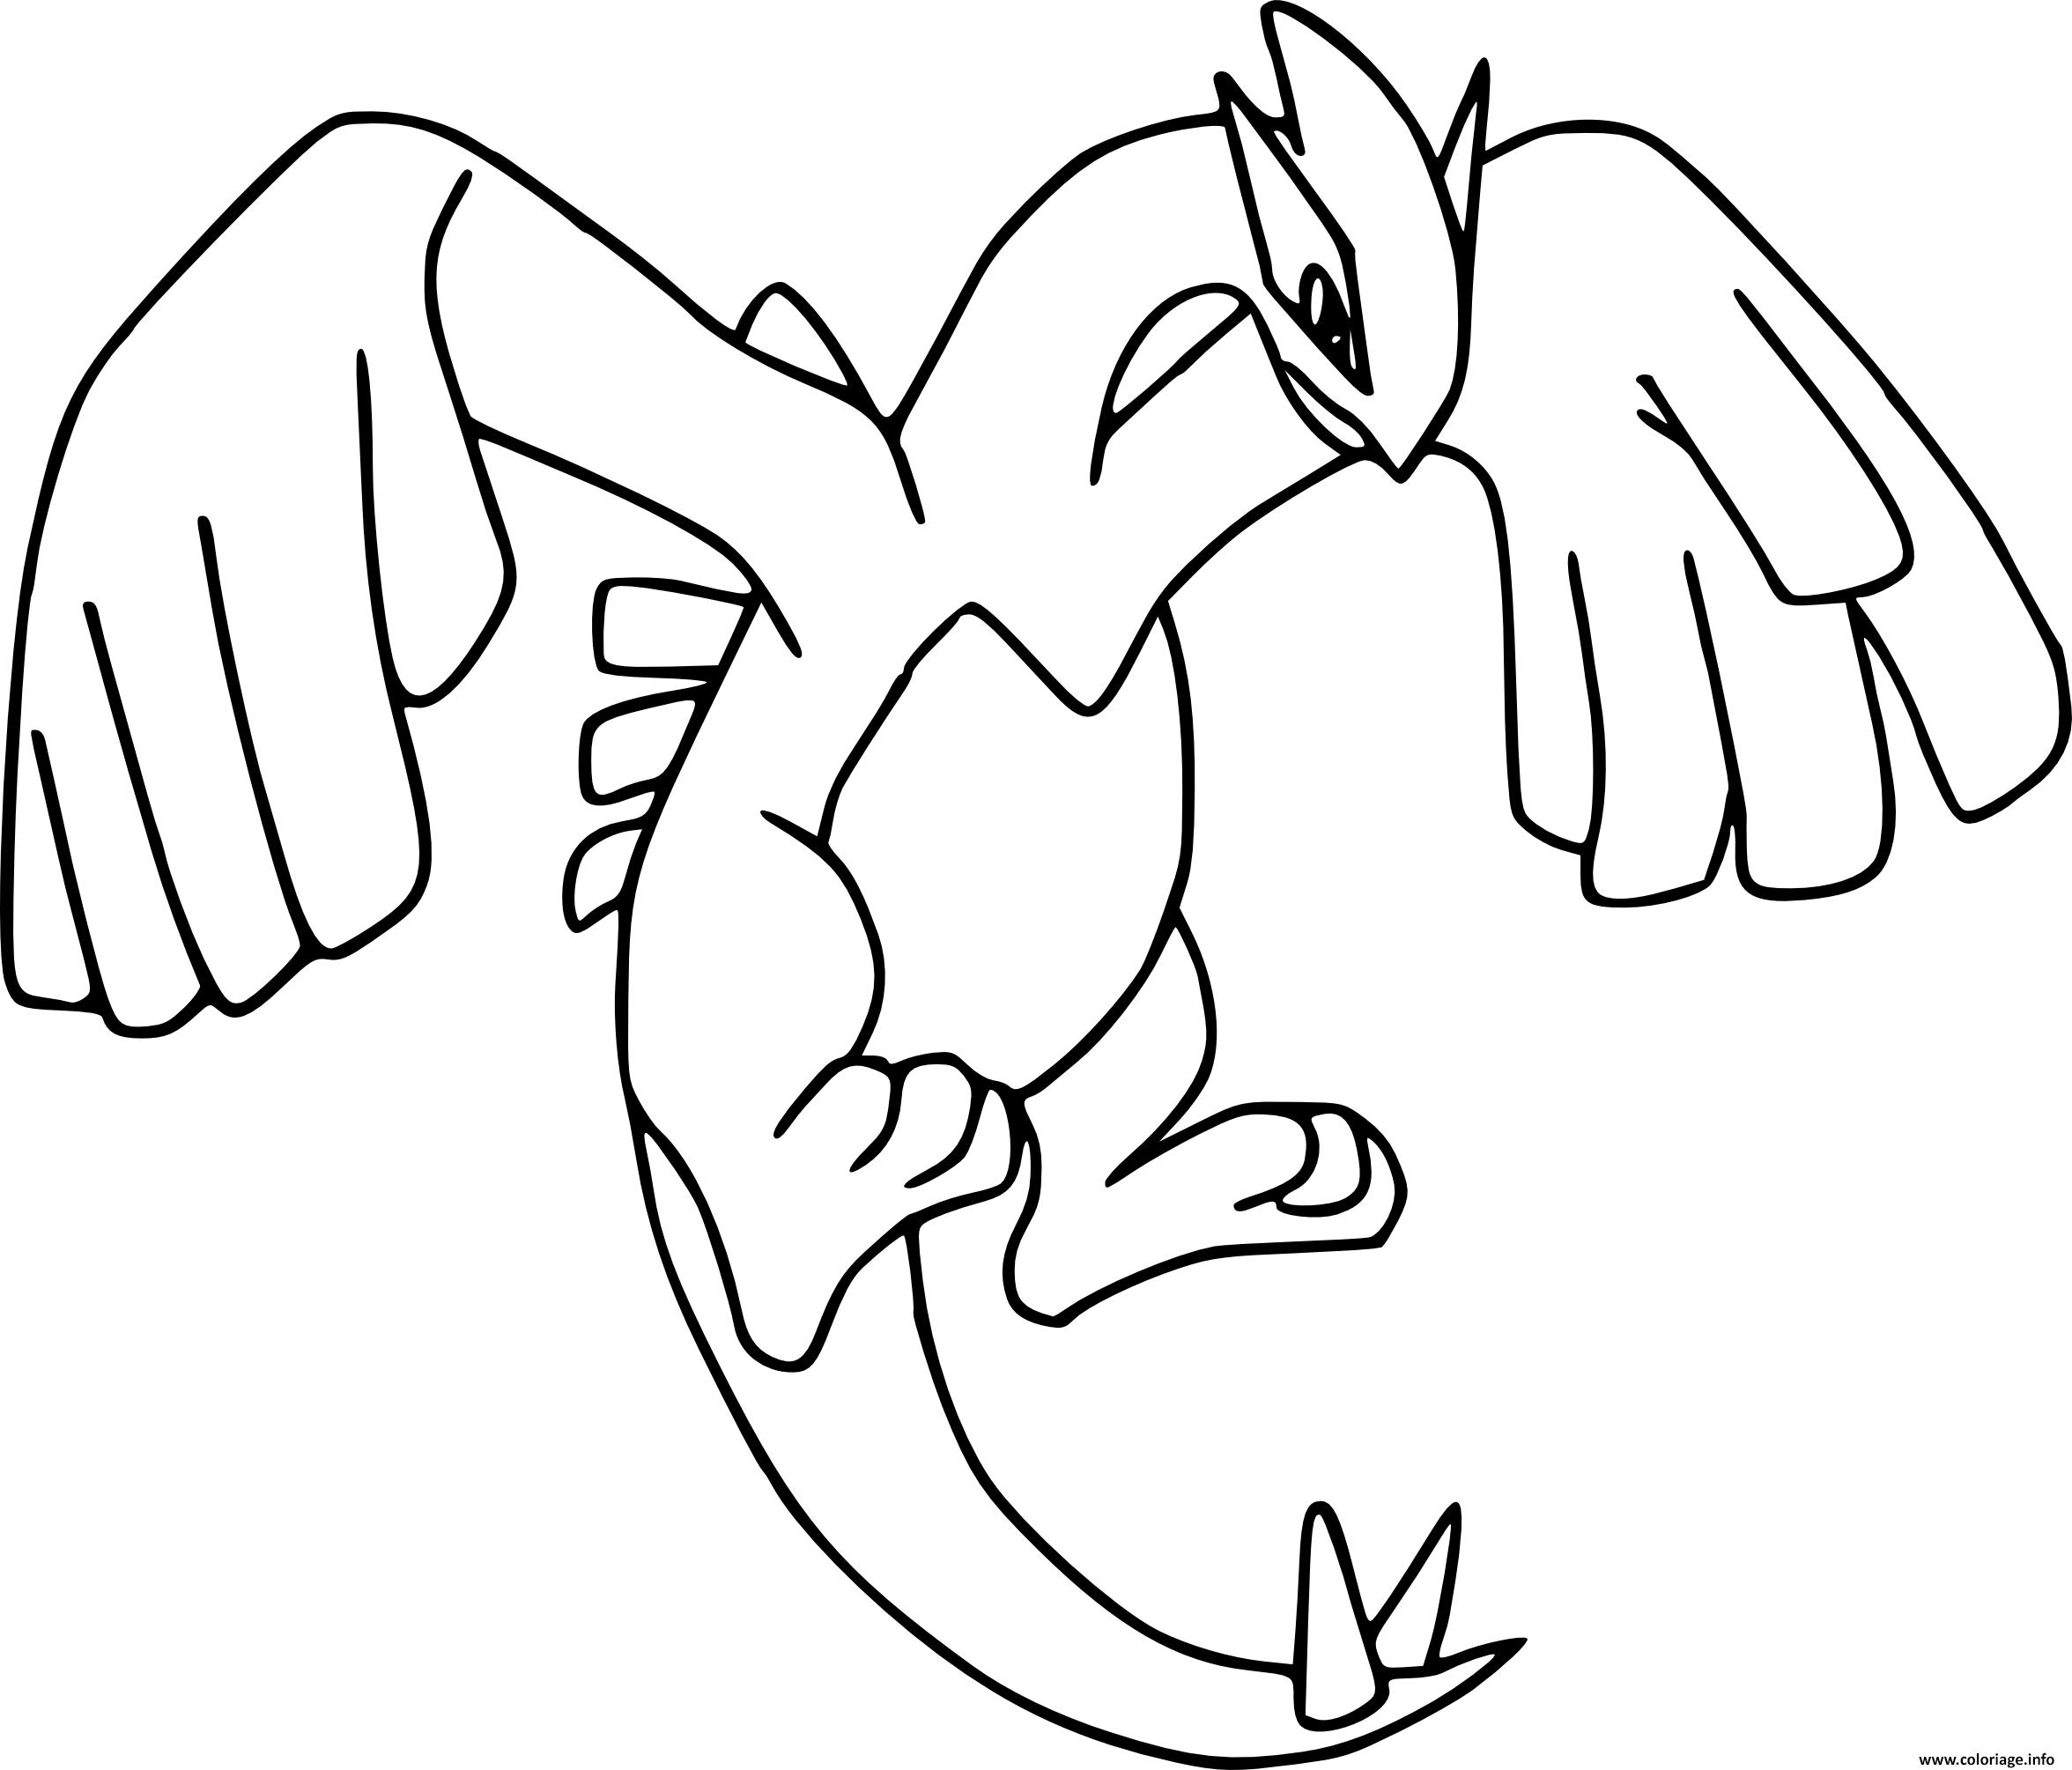 Coloriage pokemon legendaire lugia - Coloriage pokemon legendaire a imprimer ...